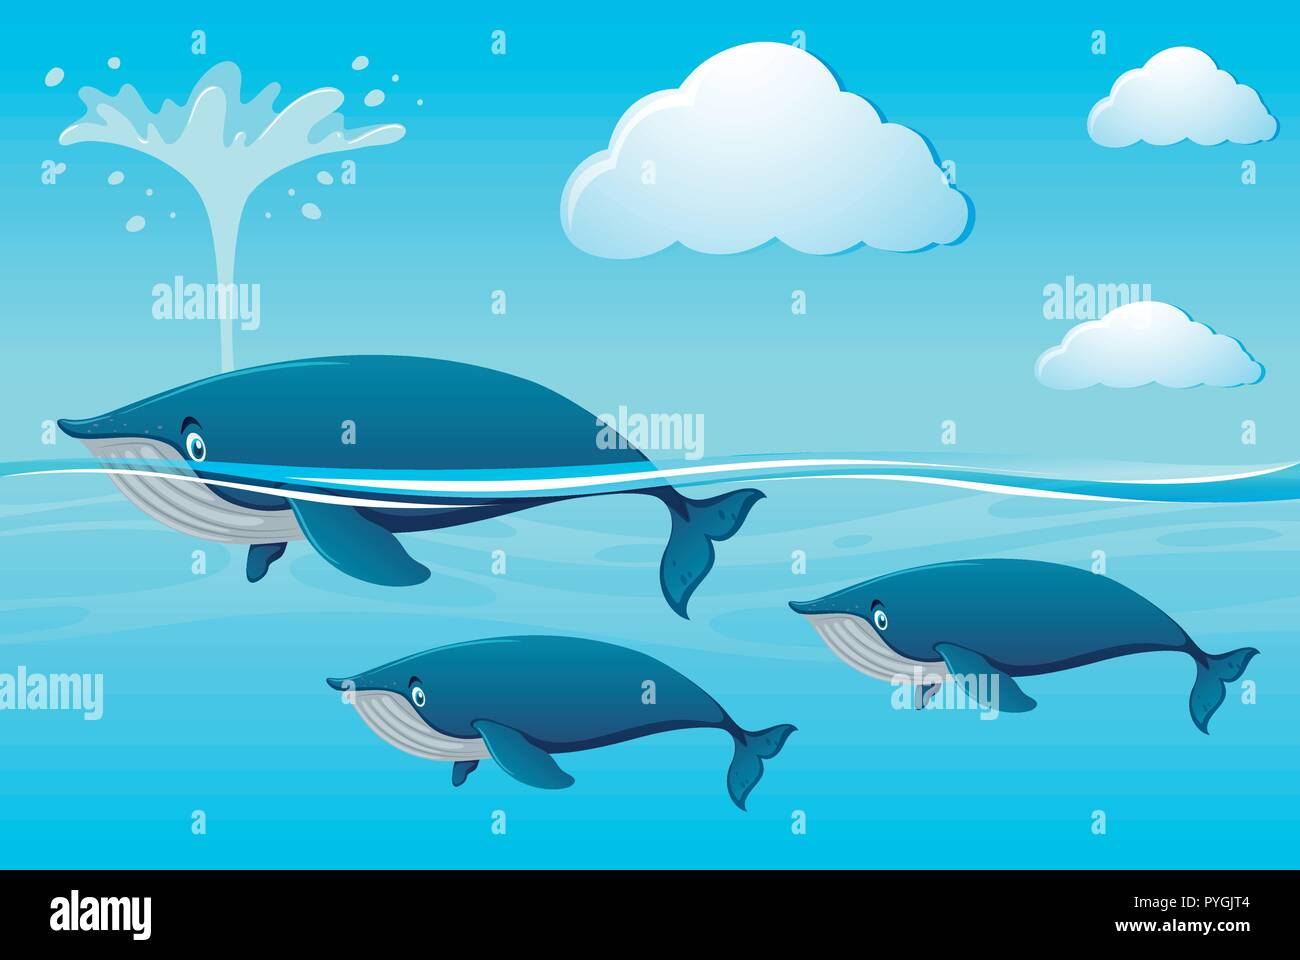 Three whales swimming in ocean illustration - Stock Vector